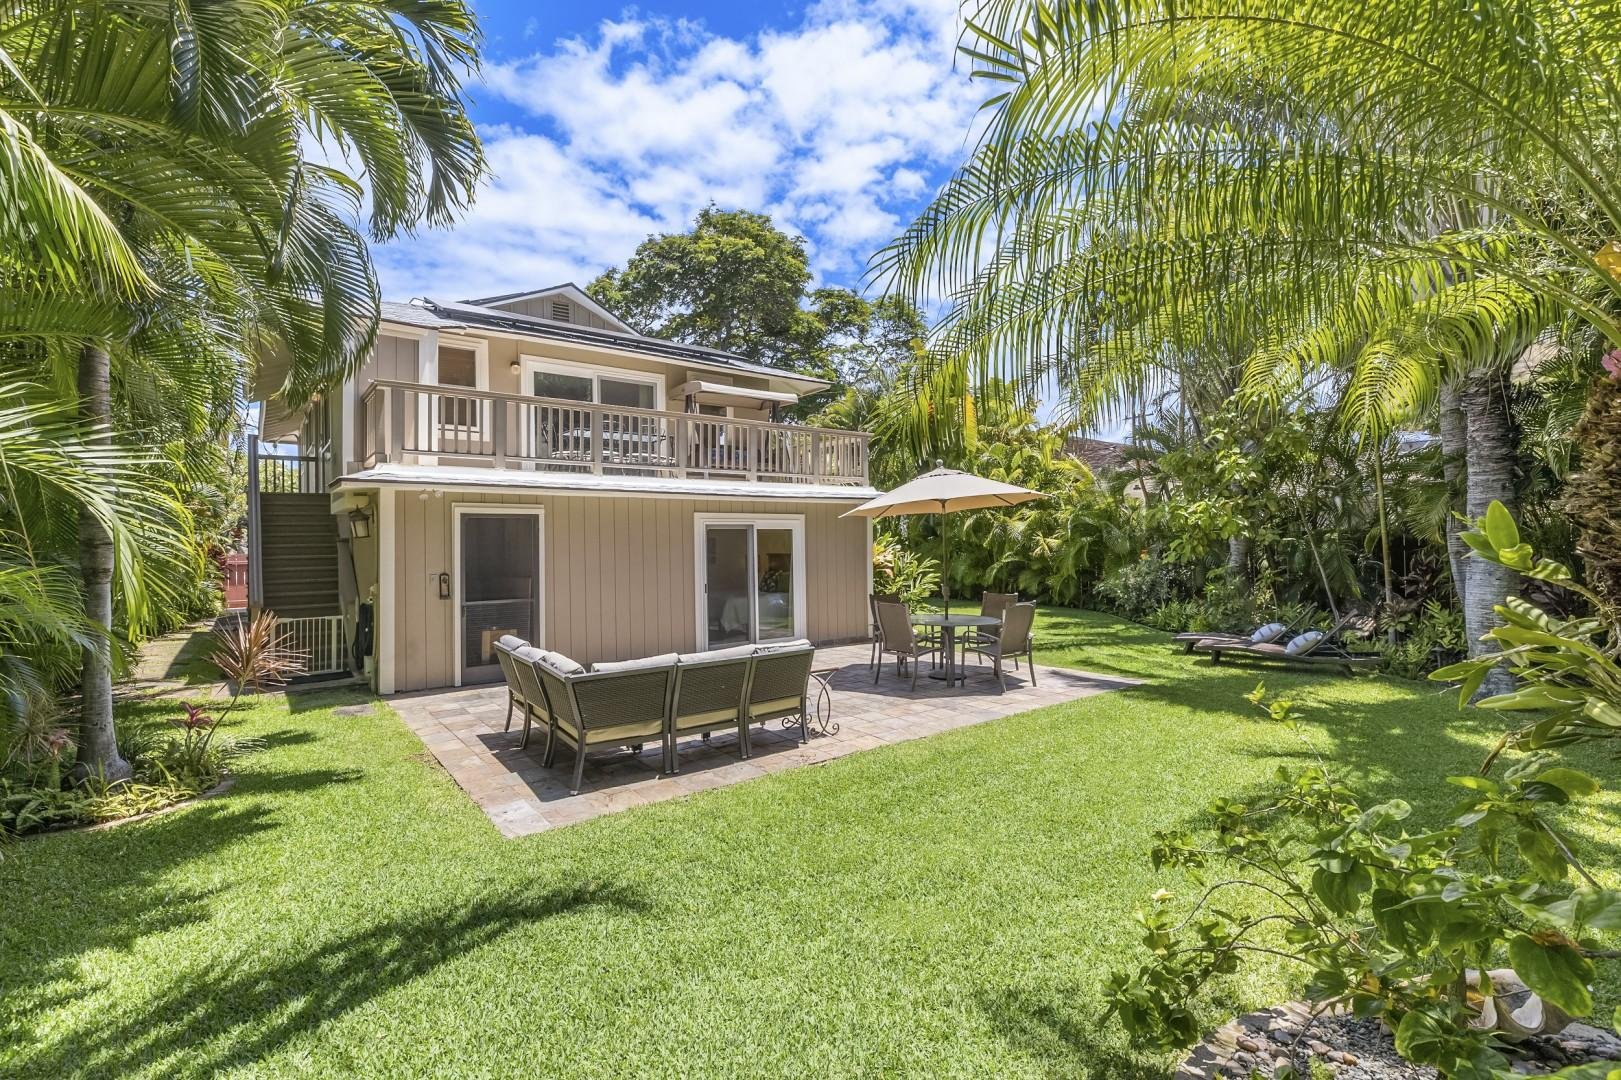 Large Private Yard with Lush Tropical Garden and Seating areas